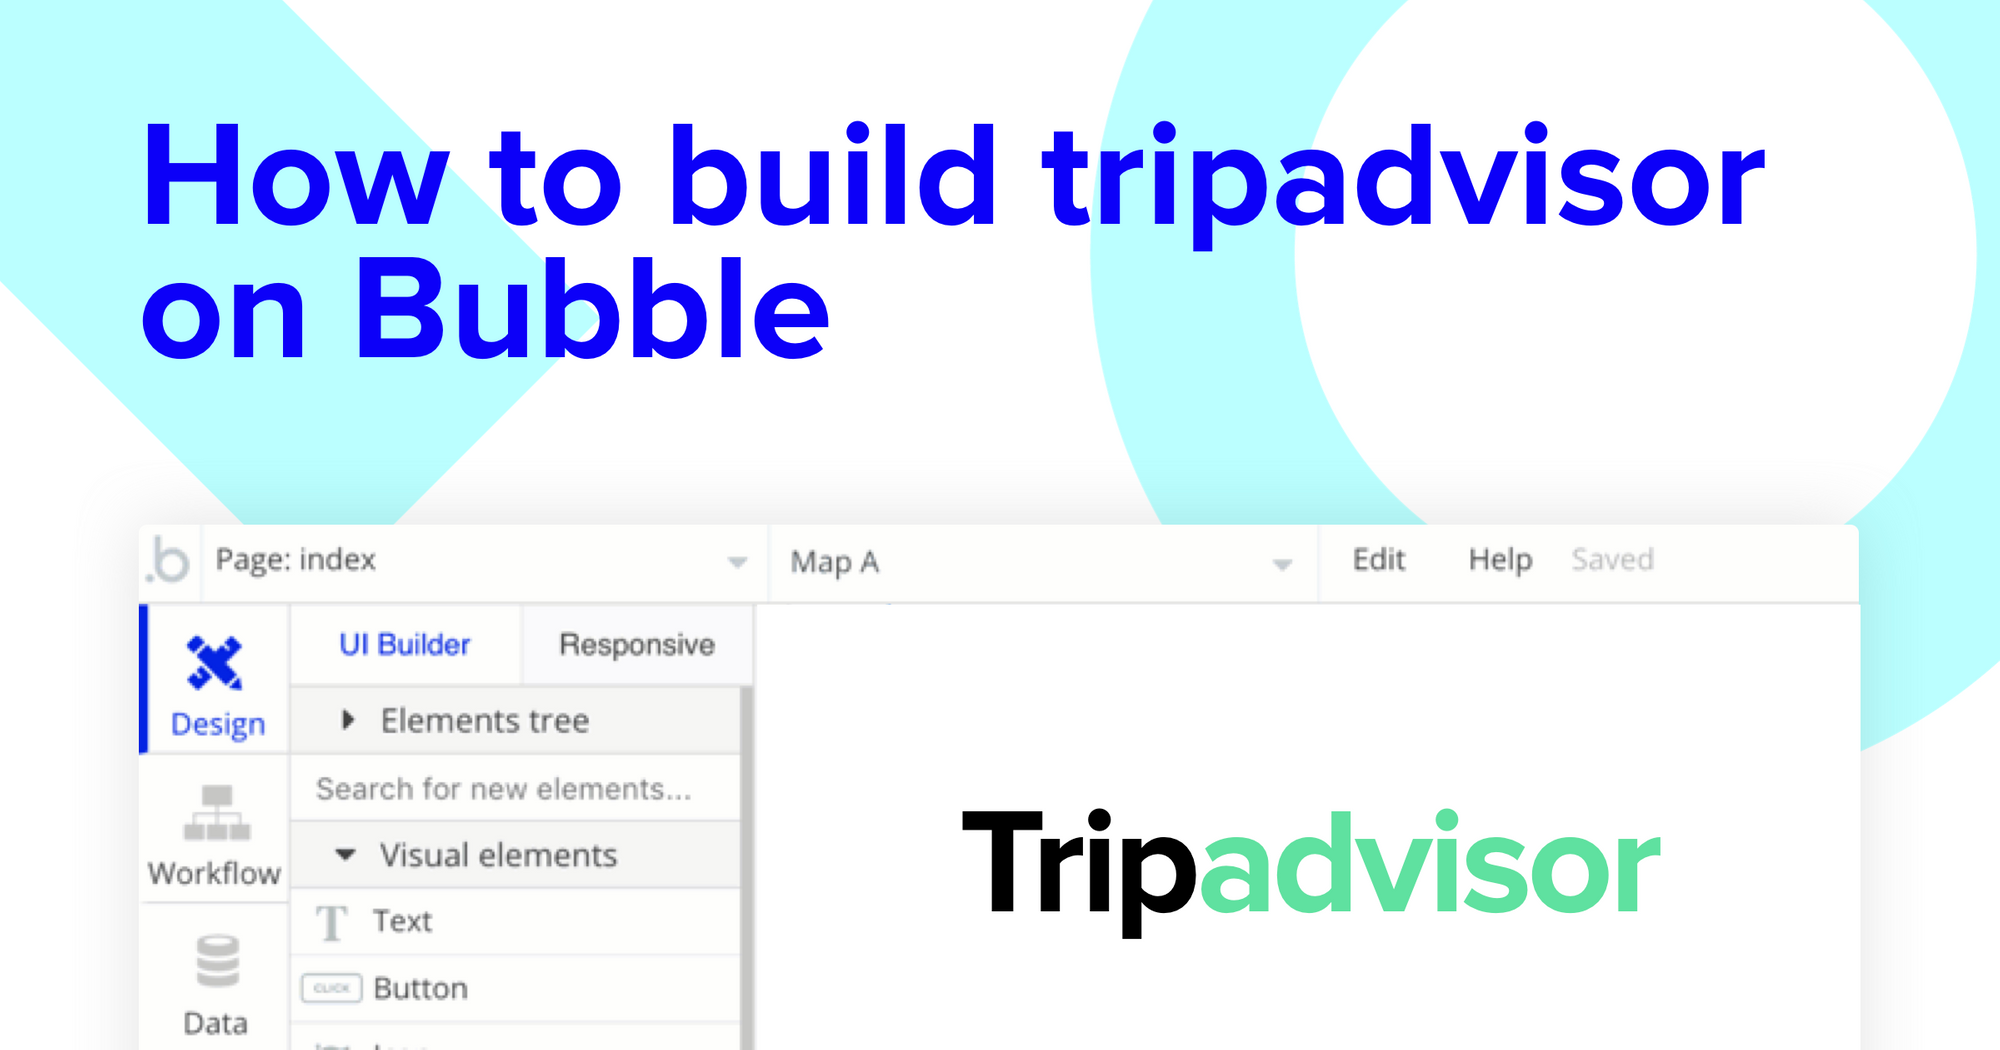 How To Build A Tripadvisor Clone With No Code